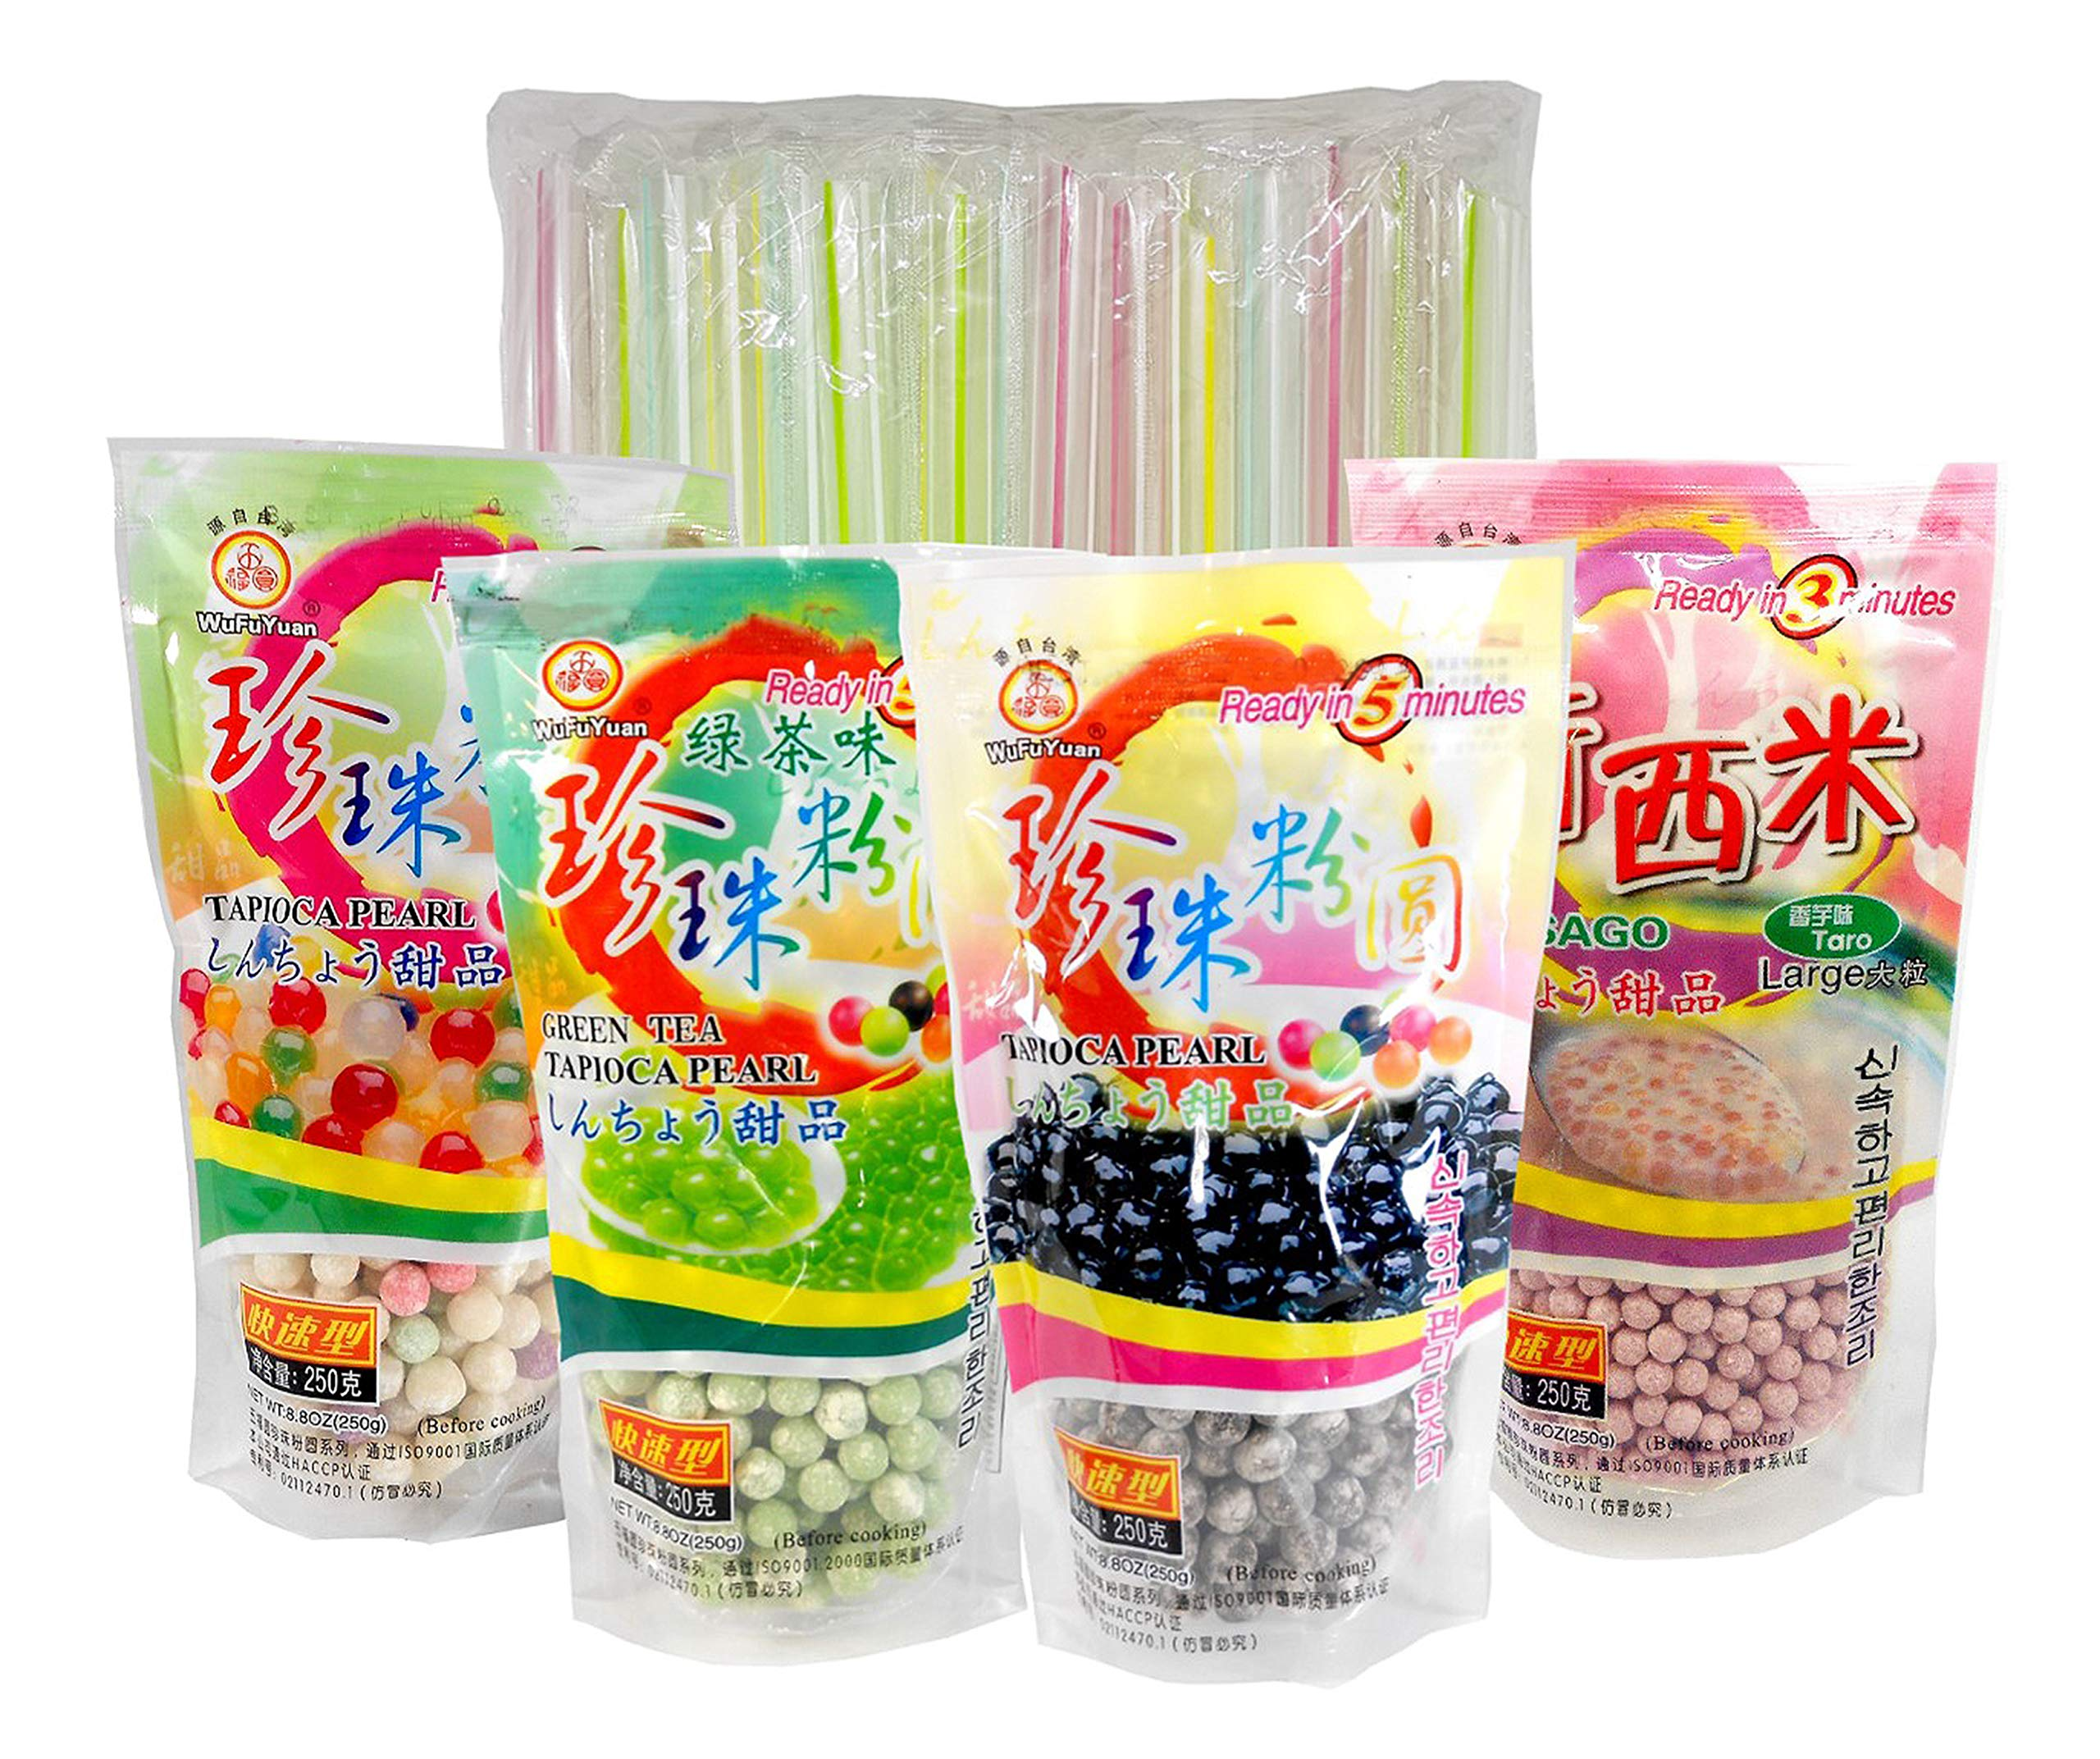 4-Pack Boba Tapioca Pearls 4 Varieties Bundle with 1 Pk of 50 Boba Wide Straws Individually Wrapped Bubble Tea Ingredients by TastyKitchen